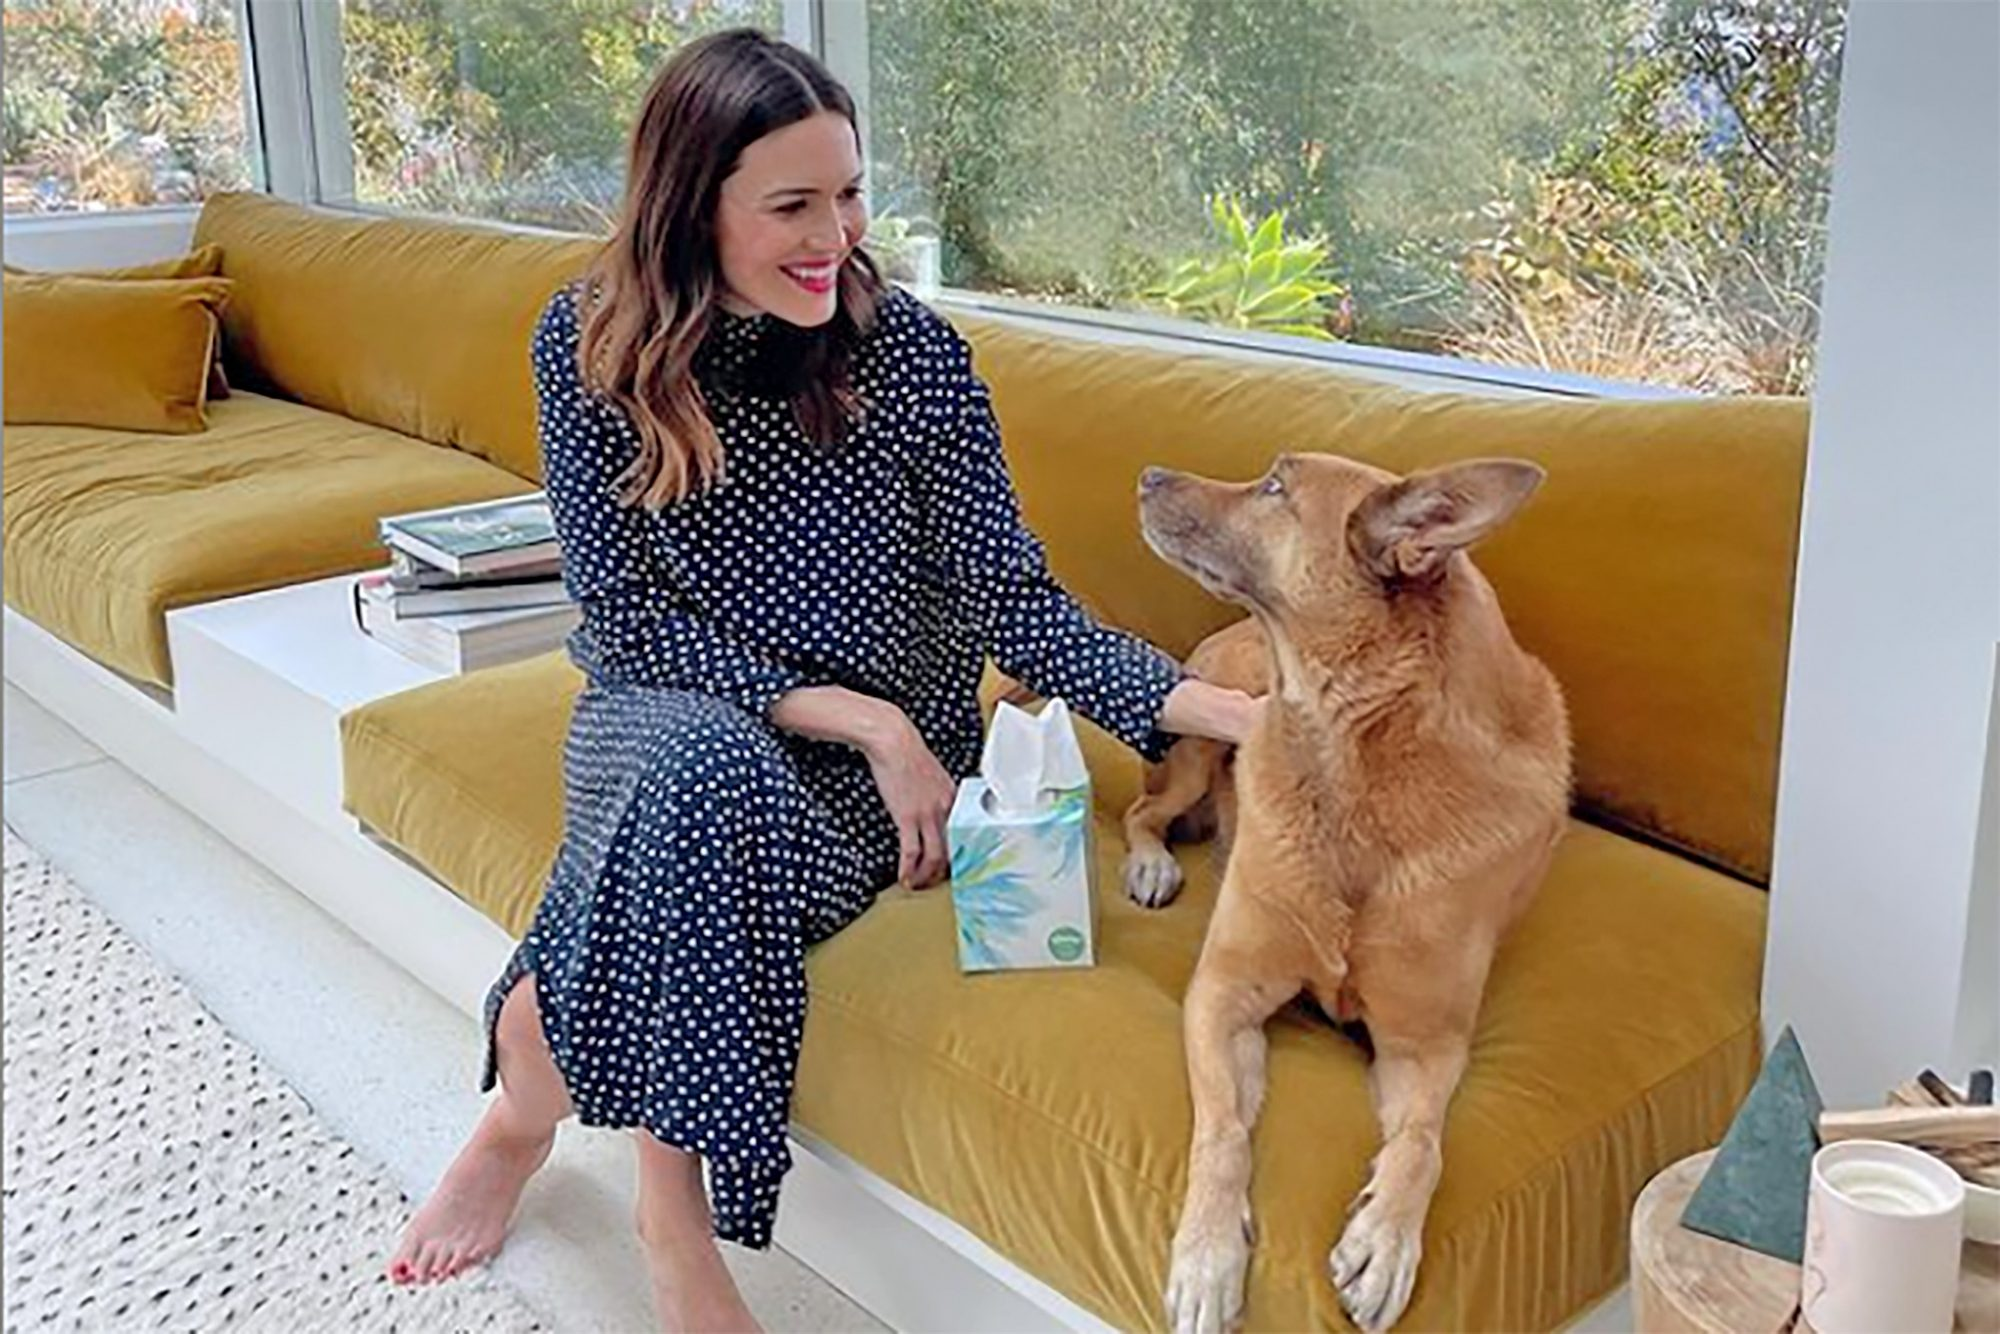 Mandy Moore at home with her dog